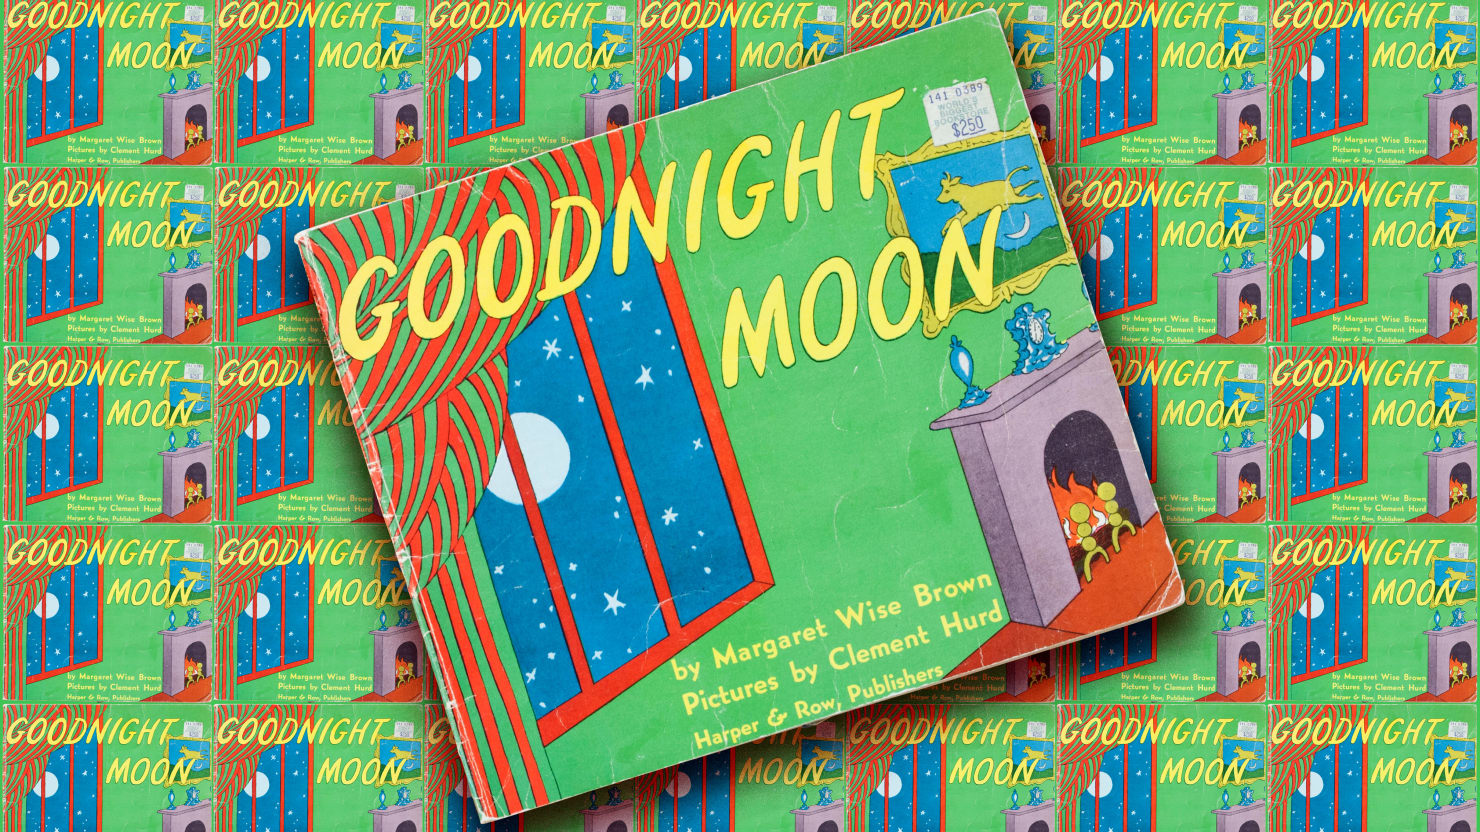 We've Been Saying Goodnight to That Moon for 70 Years